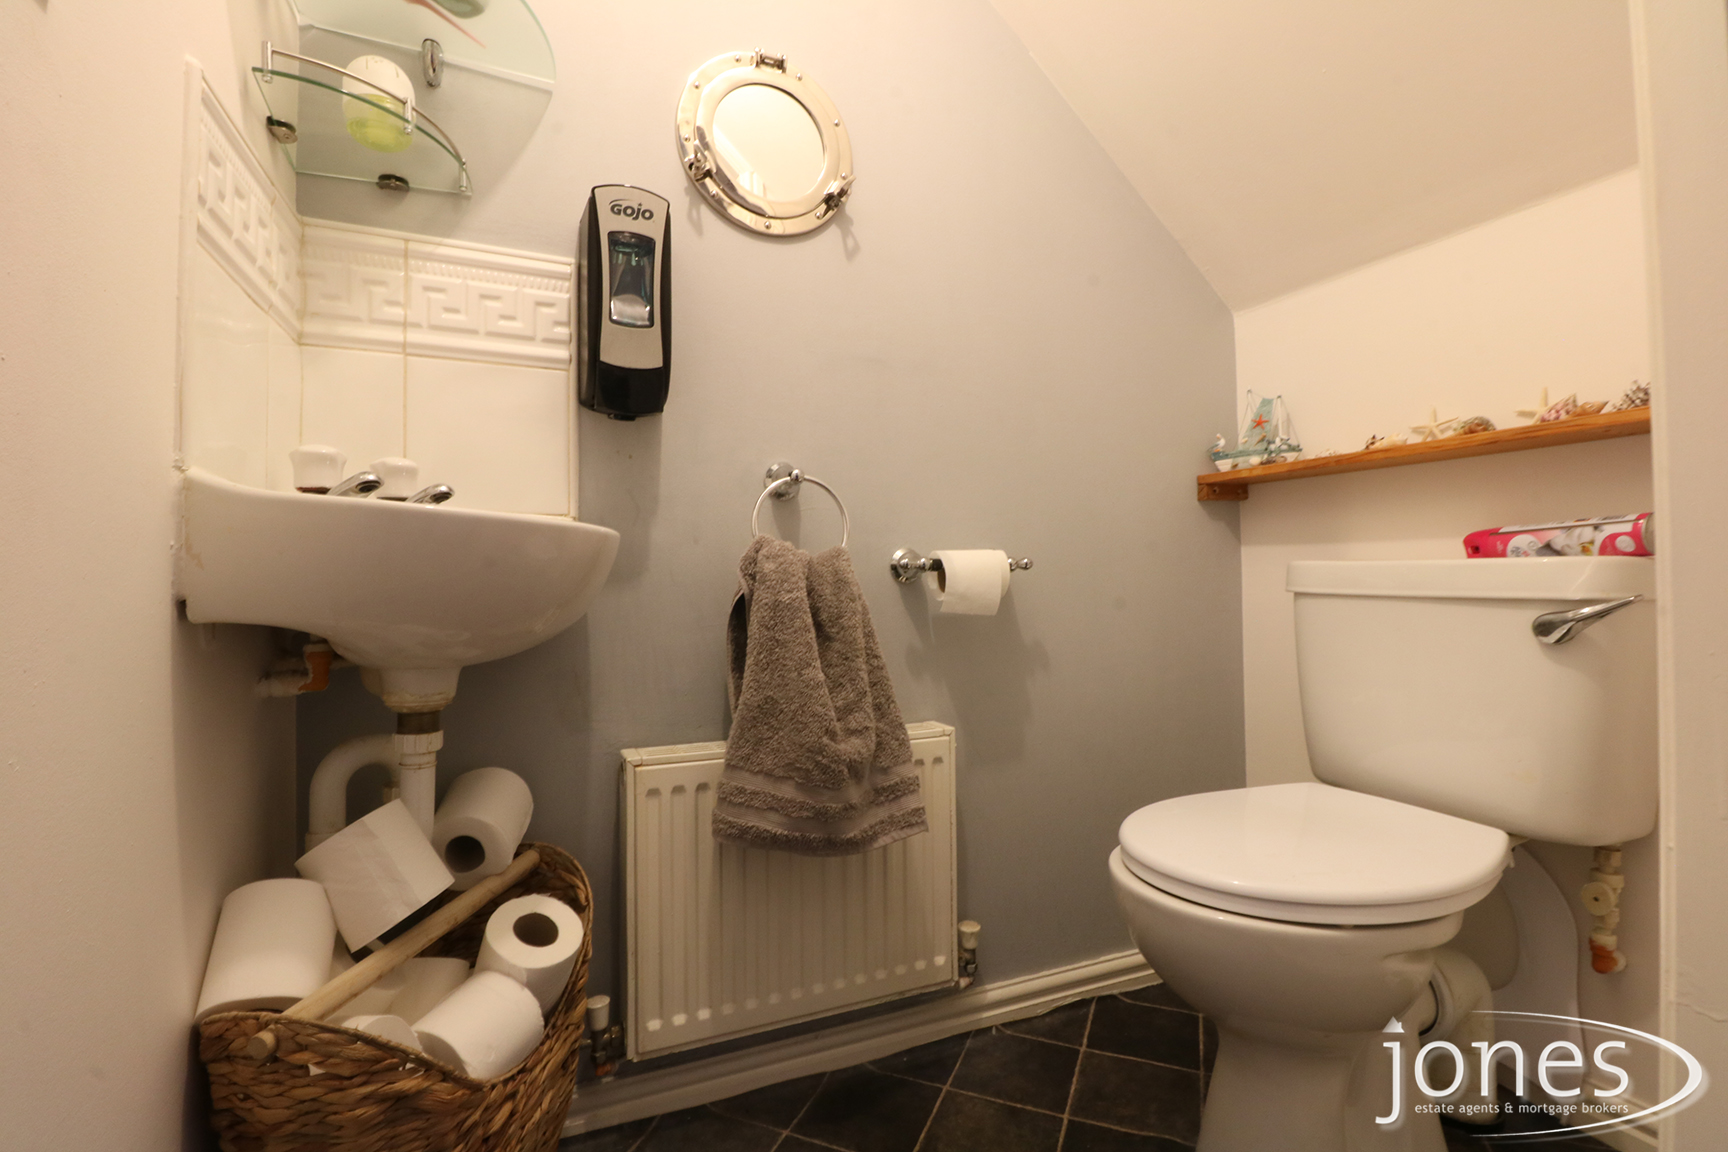 Home for Sale Let - Photo 09 West End Way , Low Hartburn,Stockton on Tees,TS18 3UA